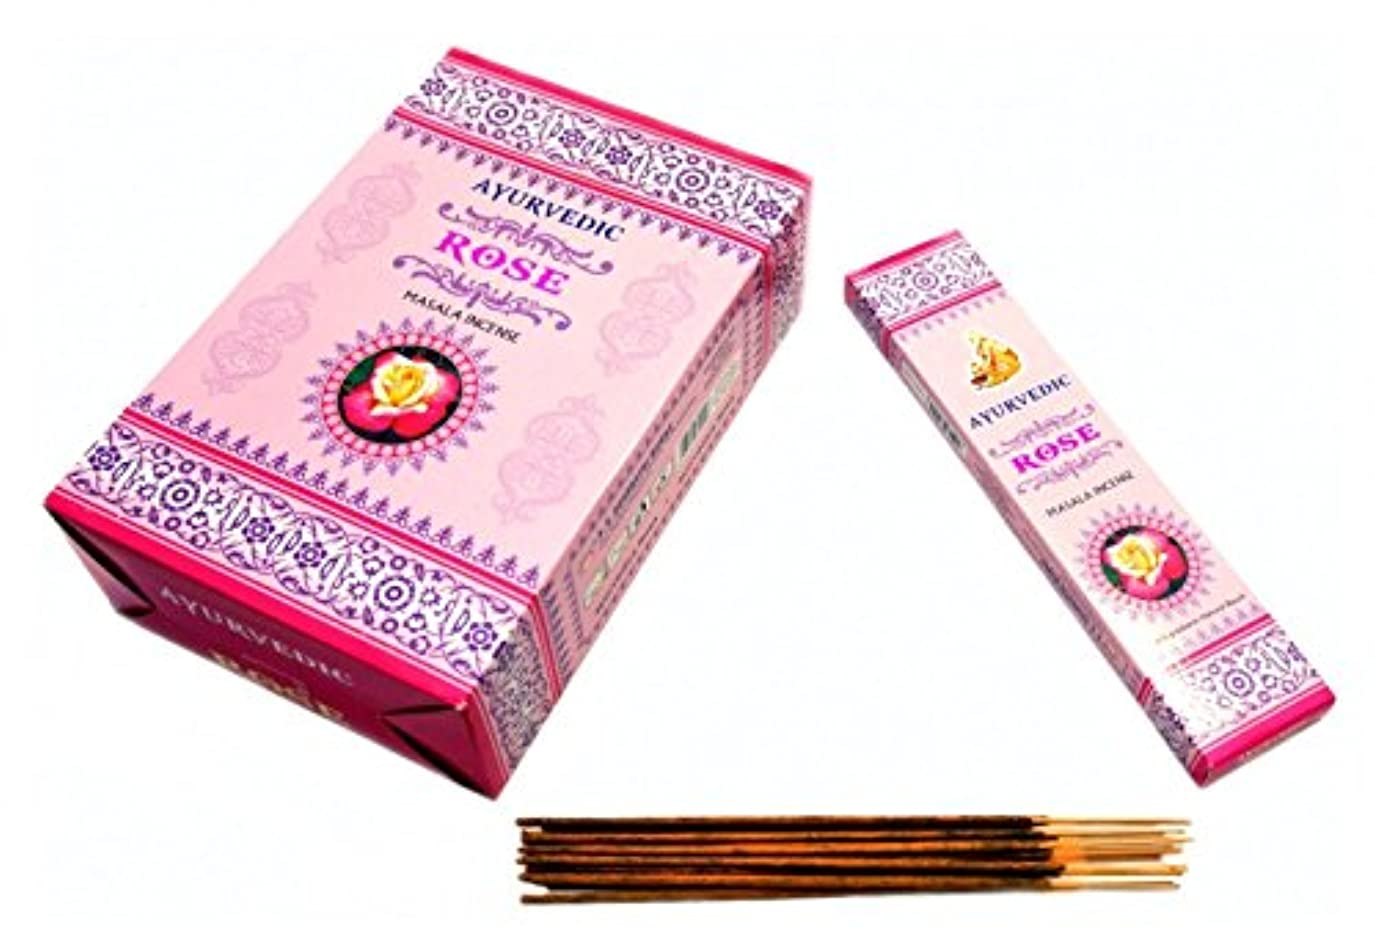 ガイダンス限りなくガウンAyurvedic Rose Masala Incense Sticks Agarbatti ( 12パックX 15 Sticks各)